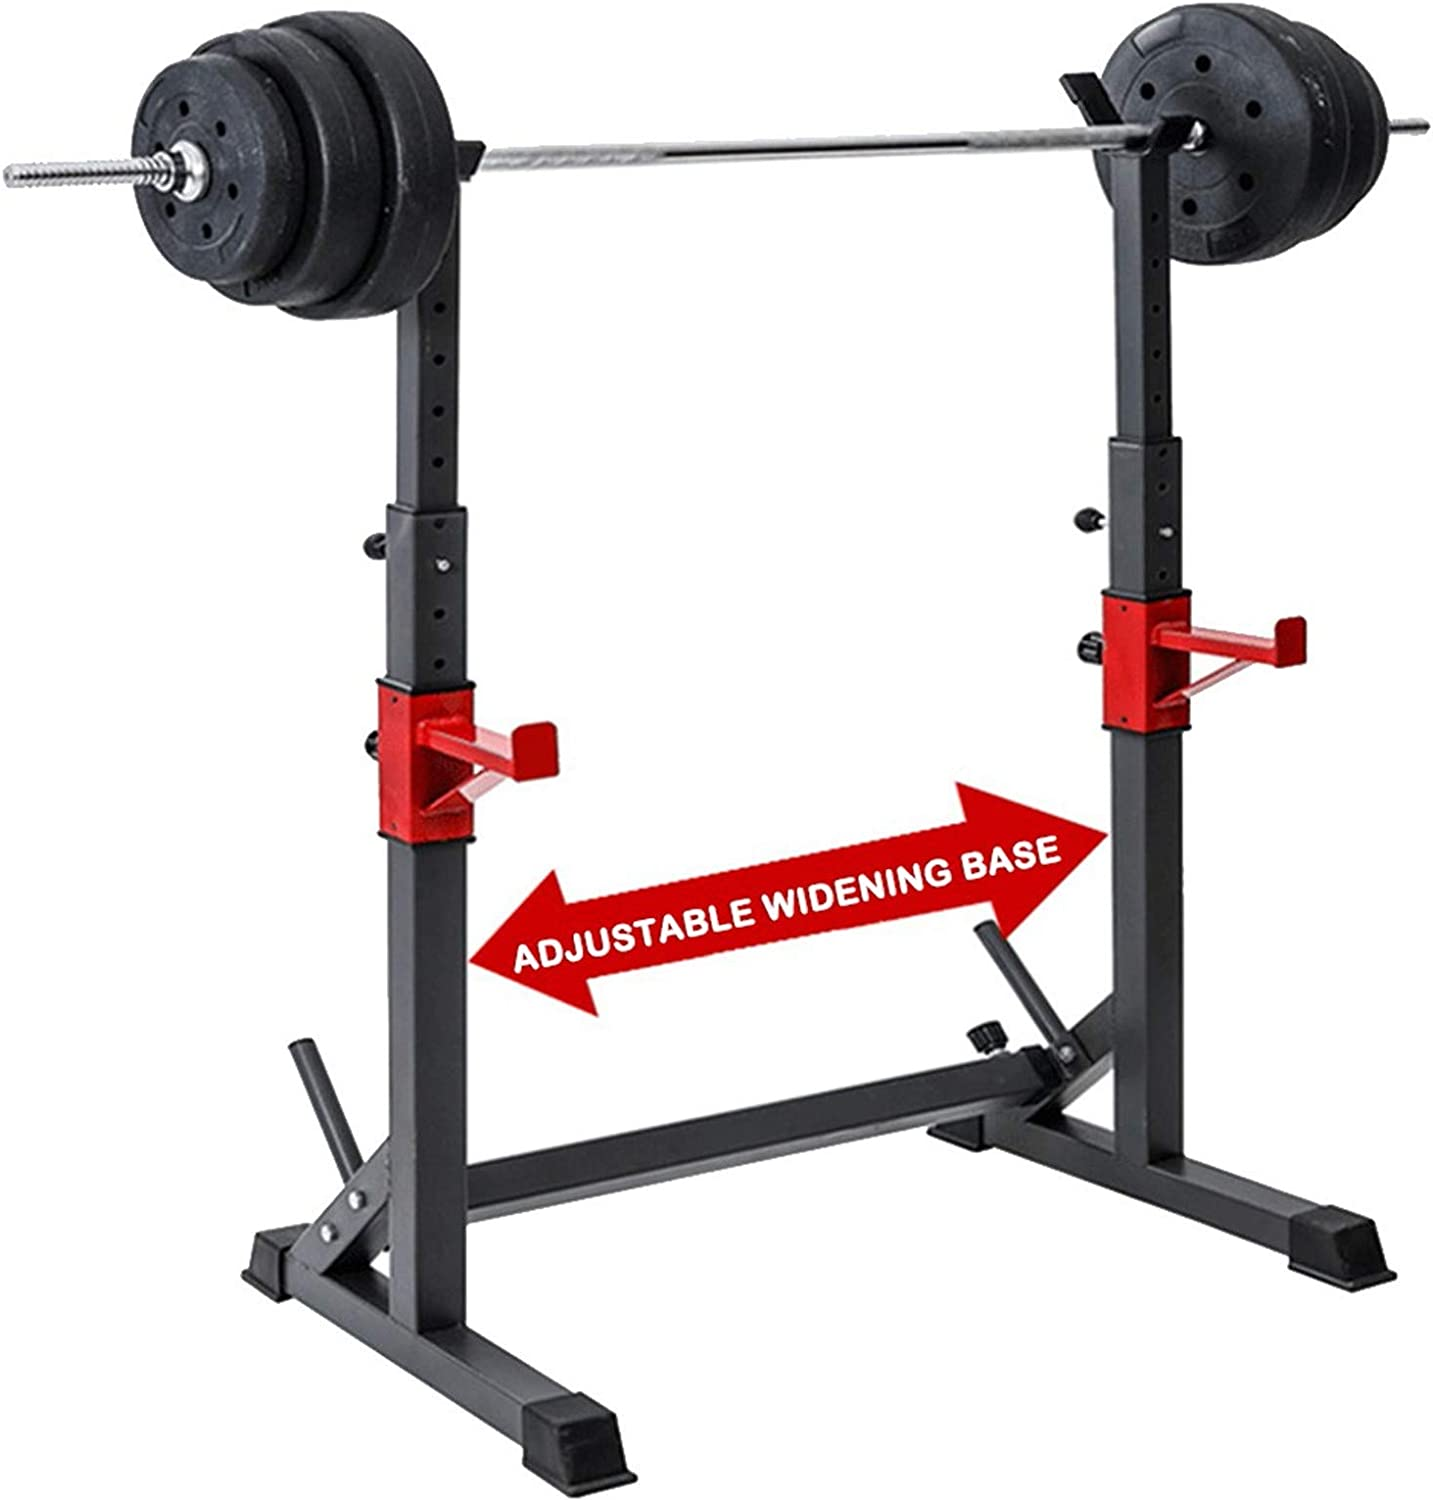 EEUK Adjustable Squat Rack Dipping Station Max Load 550 Lbs Adjustable Steel Free Bench Press Rack Stands Multi-Function Barbell Rack Dip Stand Gym Portable Dumbbell Racks Stands